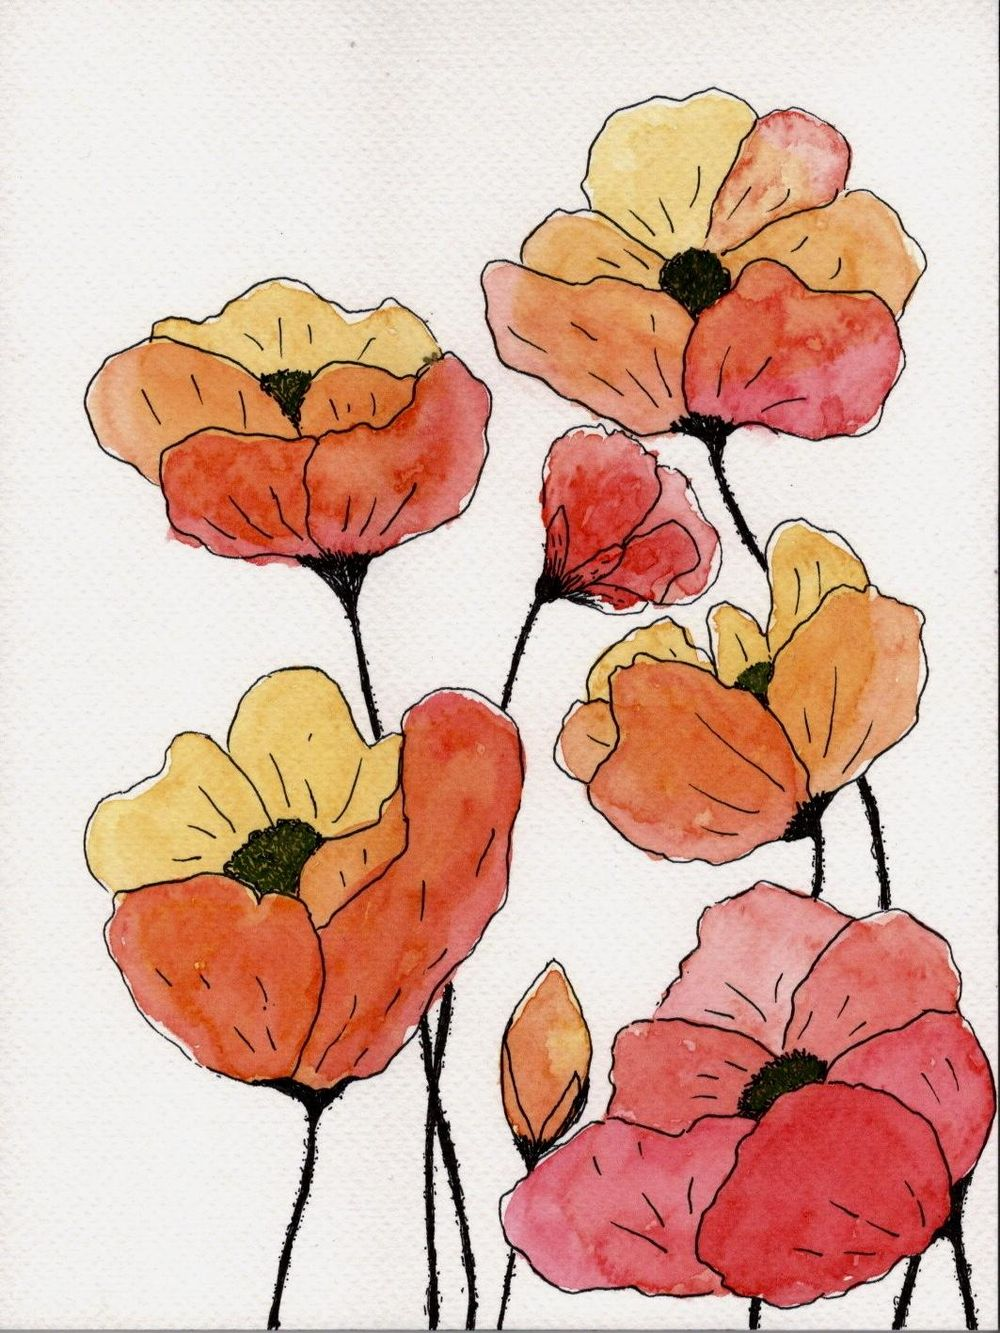 Loose poppies in different styles - image 2 - student project